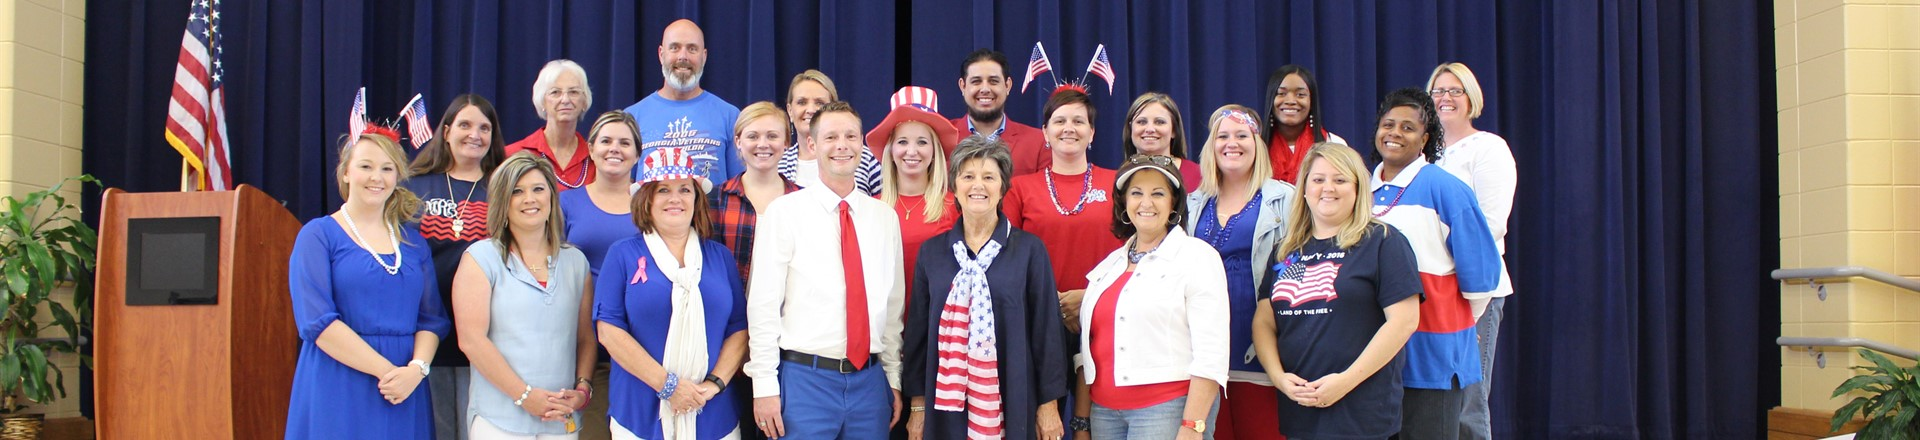 Red Ribbon Week - Wear Red, White and Blue